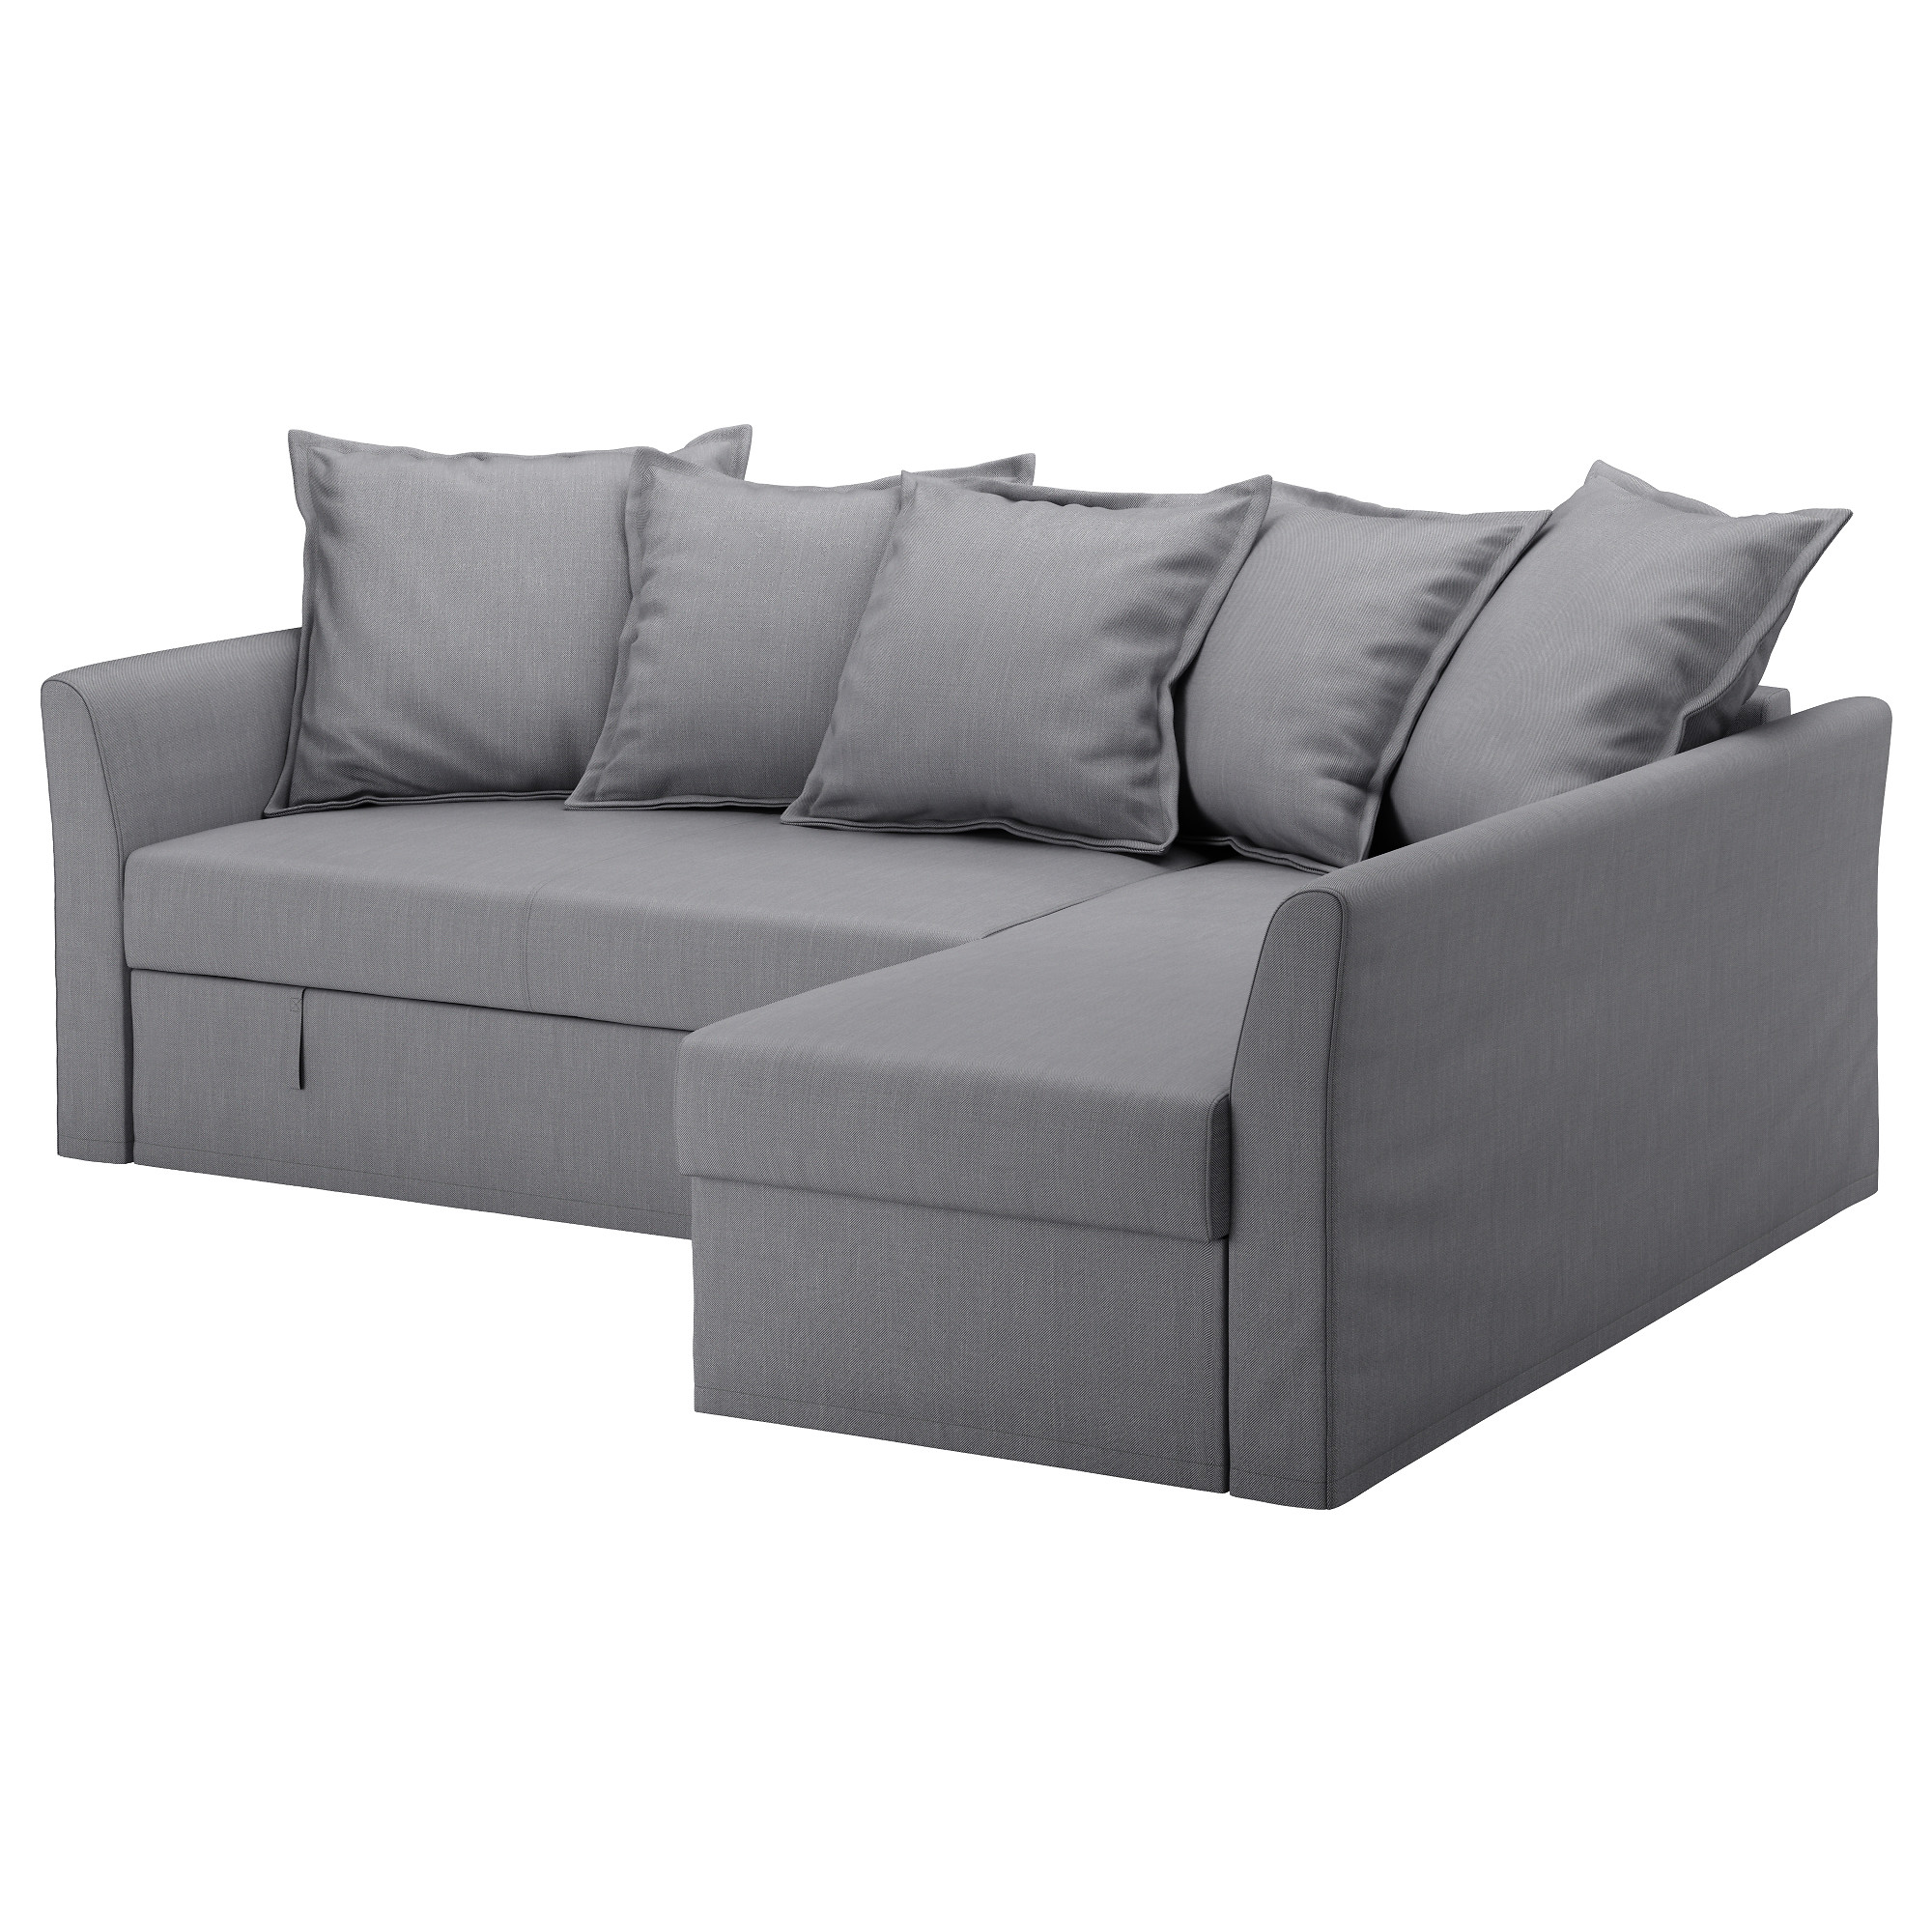 Canape Ikea Backabro 3 Places Holmsund Cover For Sleeper Sectional 3 Seat Nordvalla Medium Gray